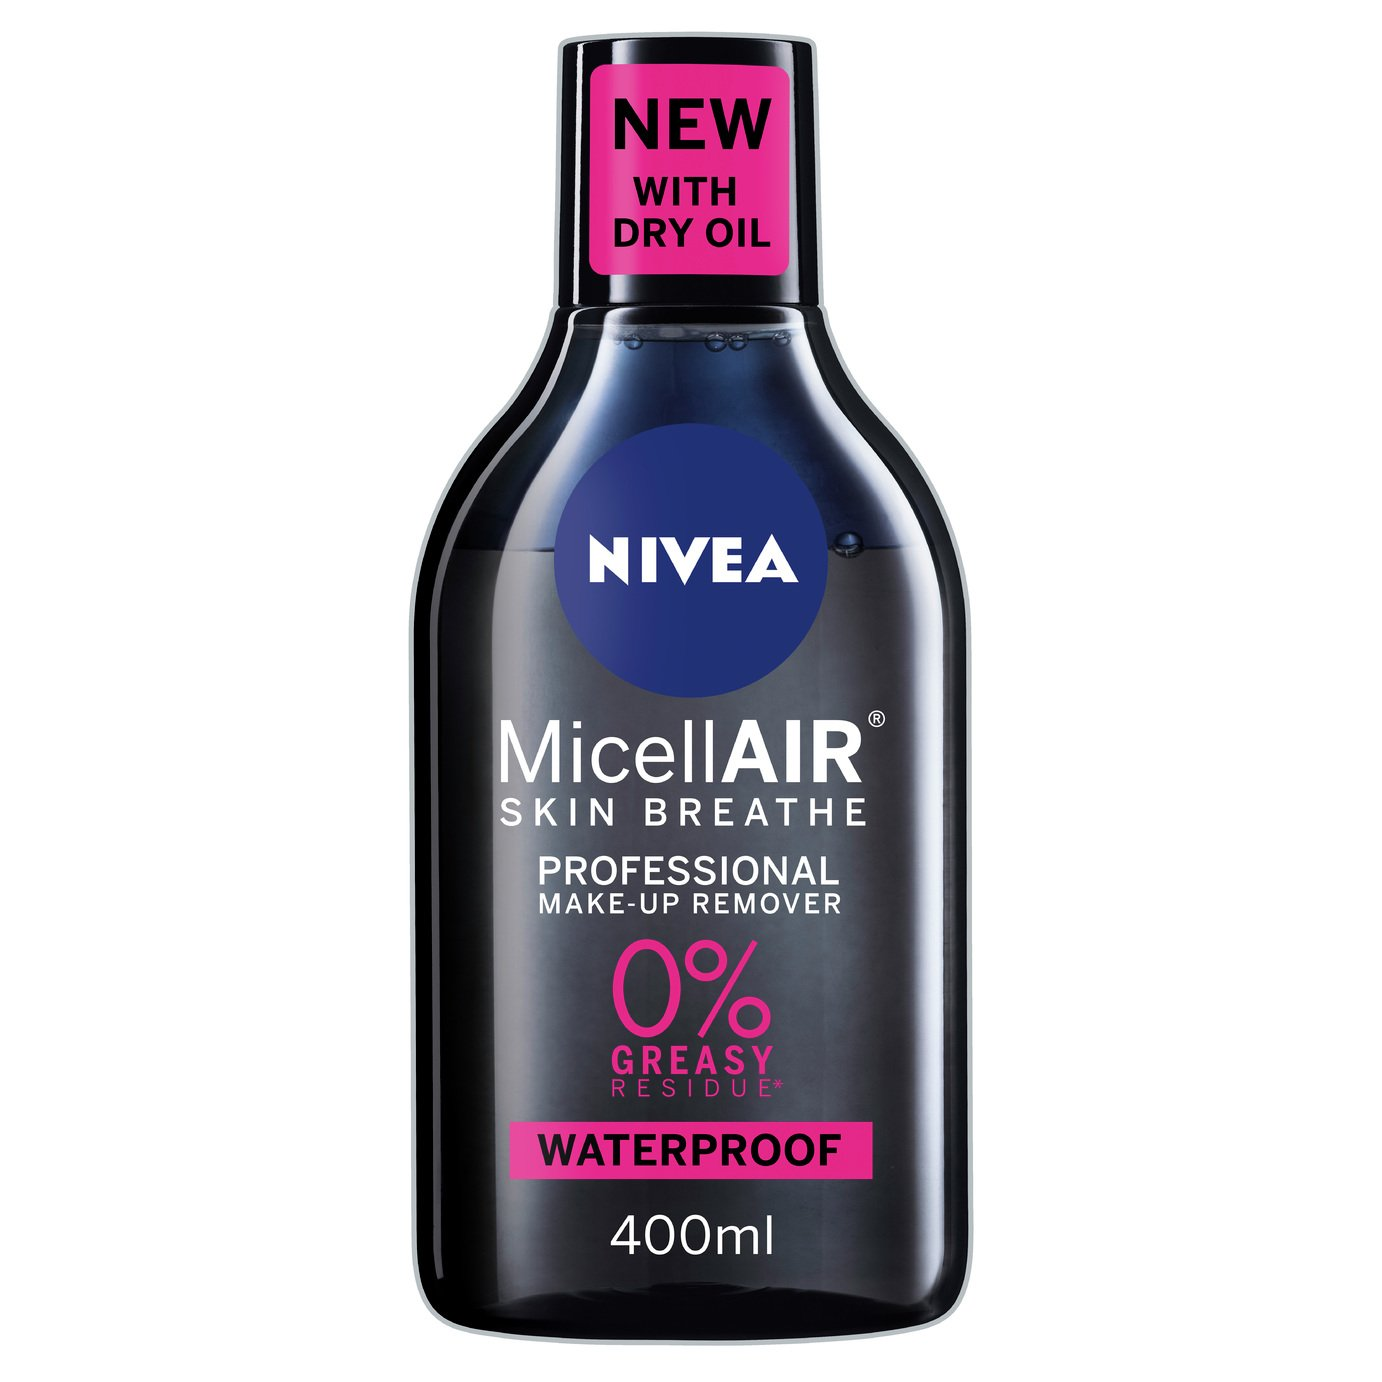 NIVEA Micellair Make-Up Remover - 400ml